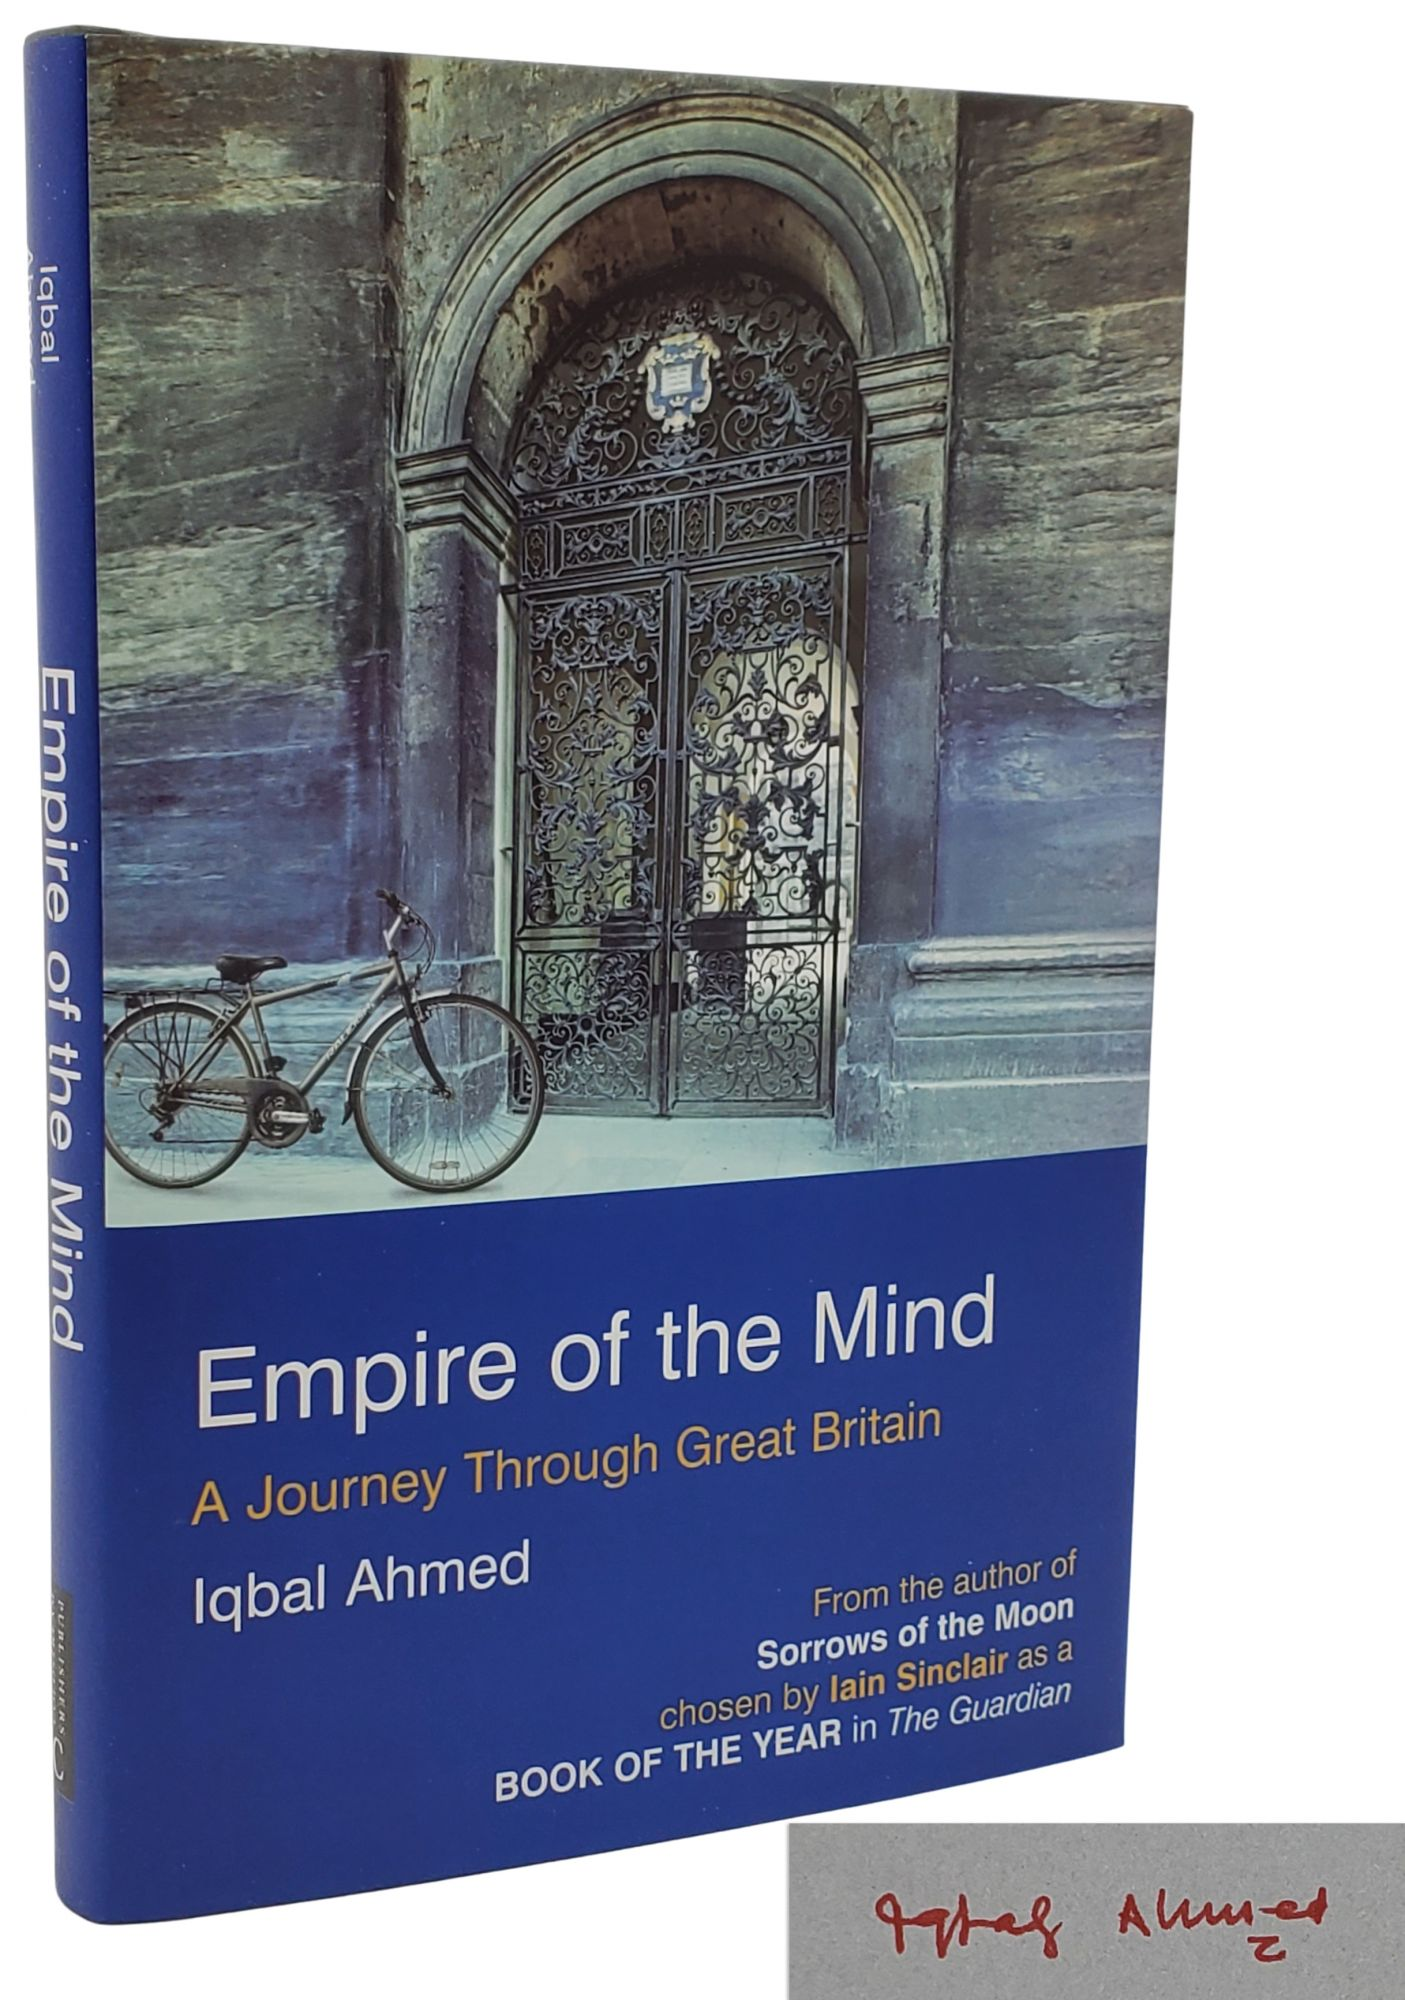 EMPIRE OF THE MIND. A Journey Through Great Britain. Iqbal Ahmed.